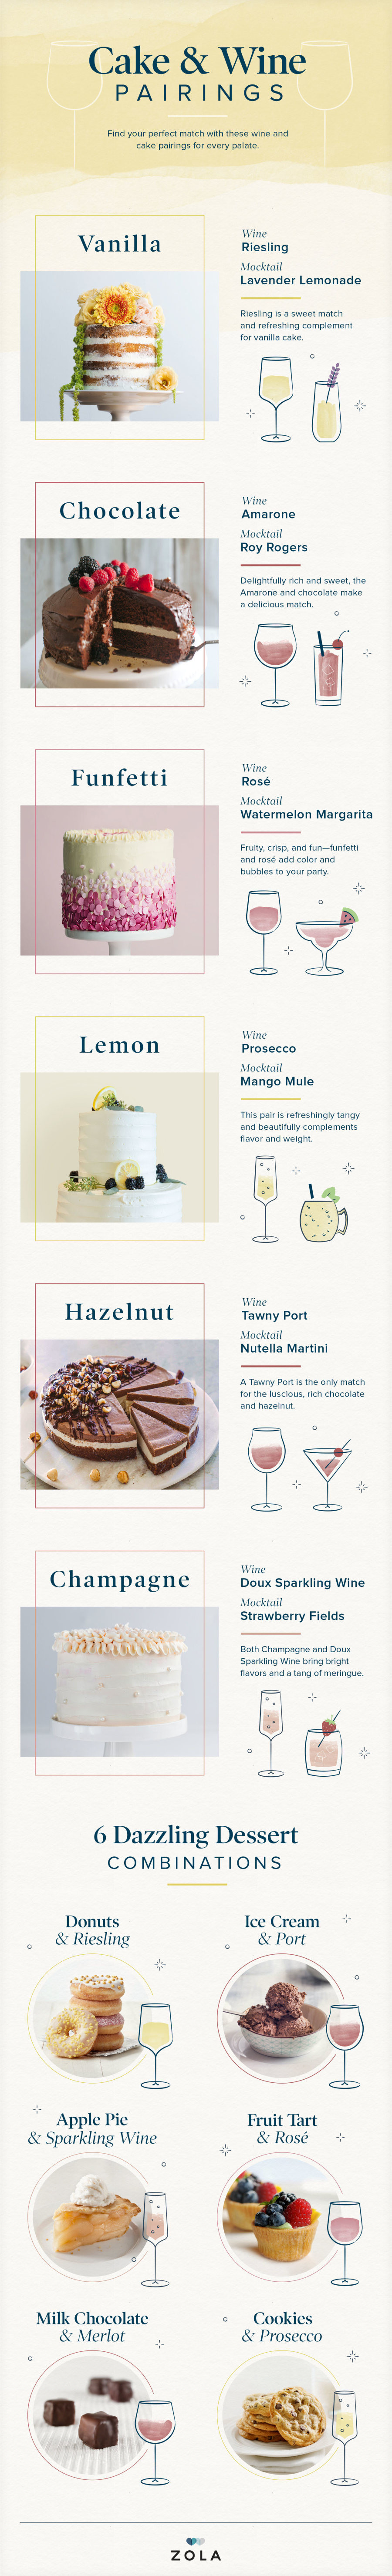 Decadence at Home: A Cake and Wine Pairing Guide What kind of wine goes with cake?